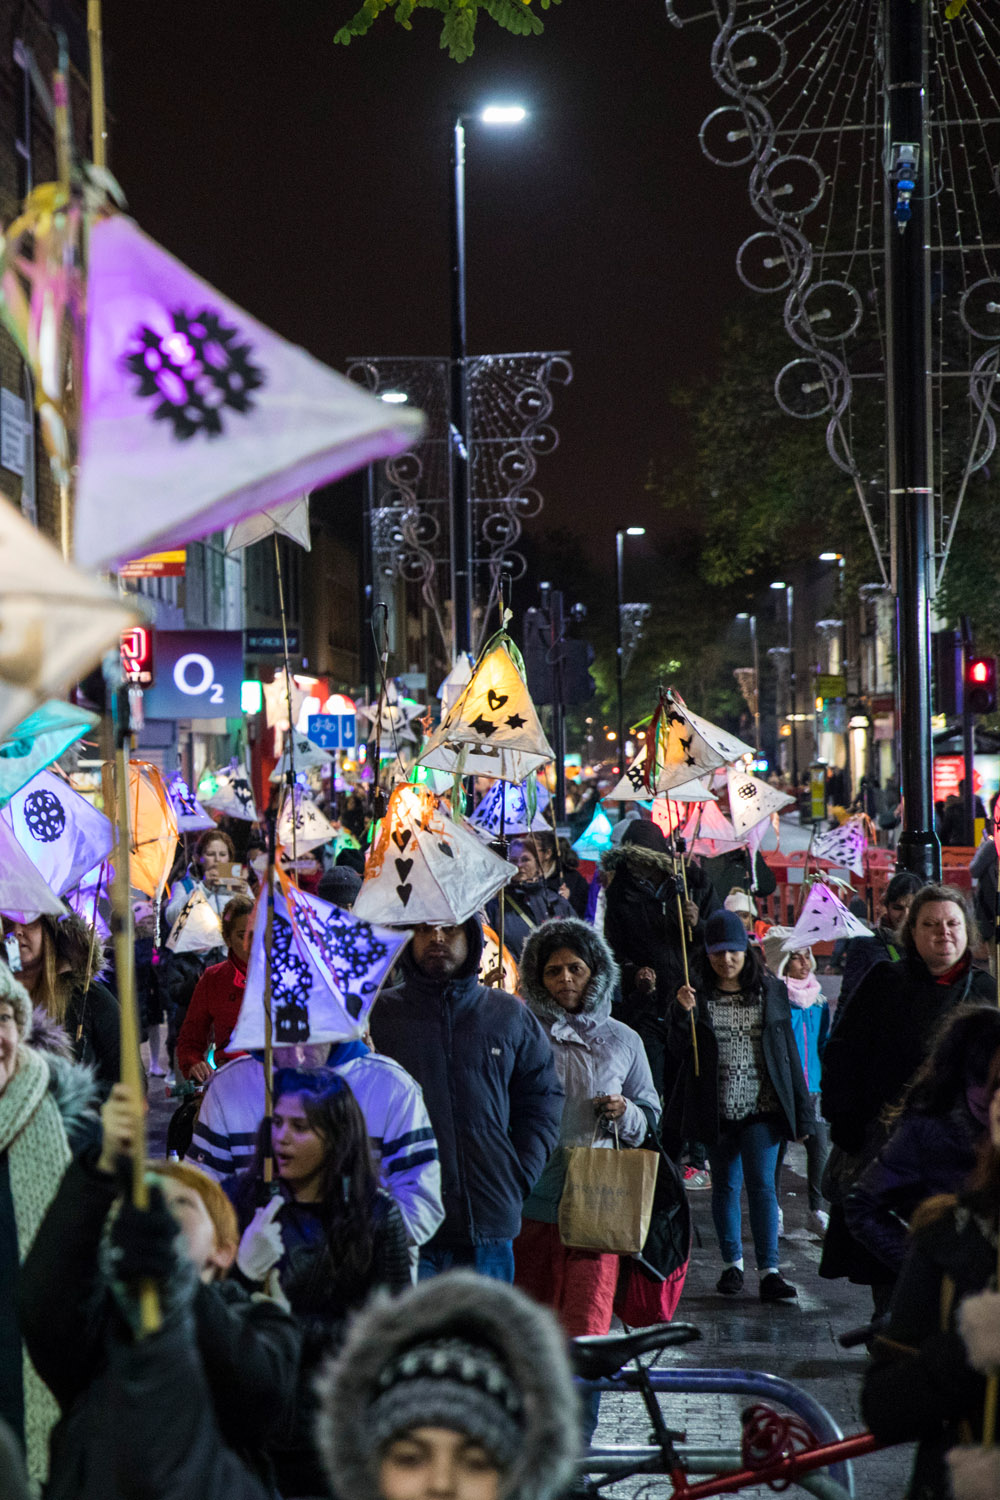 BellSquareLDN_Hounslow WinterLights Watermans 19Nov2016┬®Vipul Sangoi 096 9712.jpg